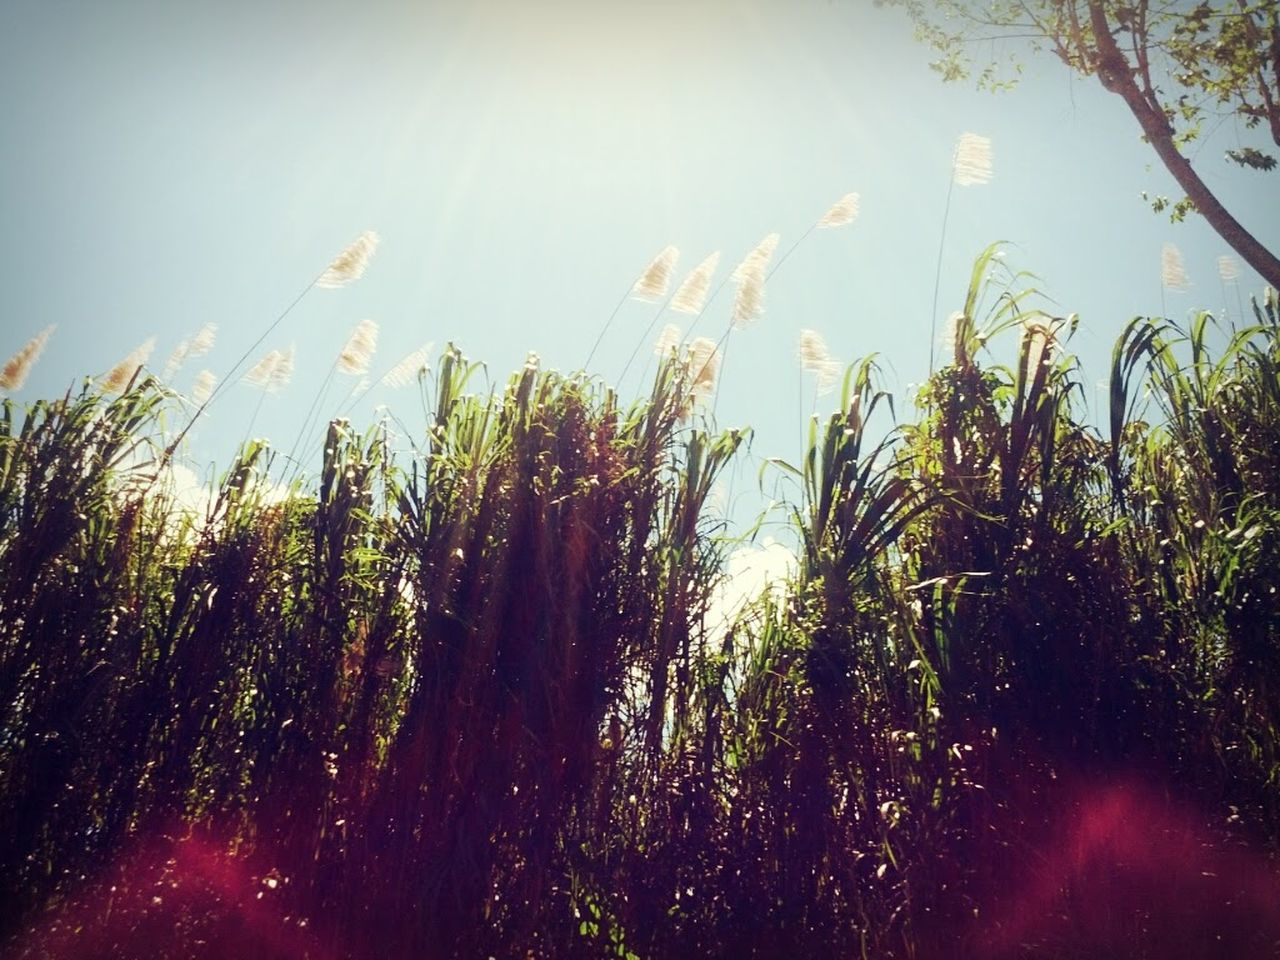 growth, plant, nature, bright, tranquility, sunlight, no people, outdoors, beauty in nature, grass, day, sky